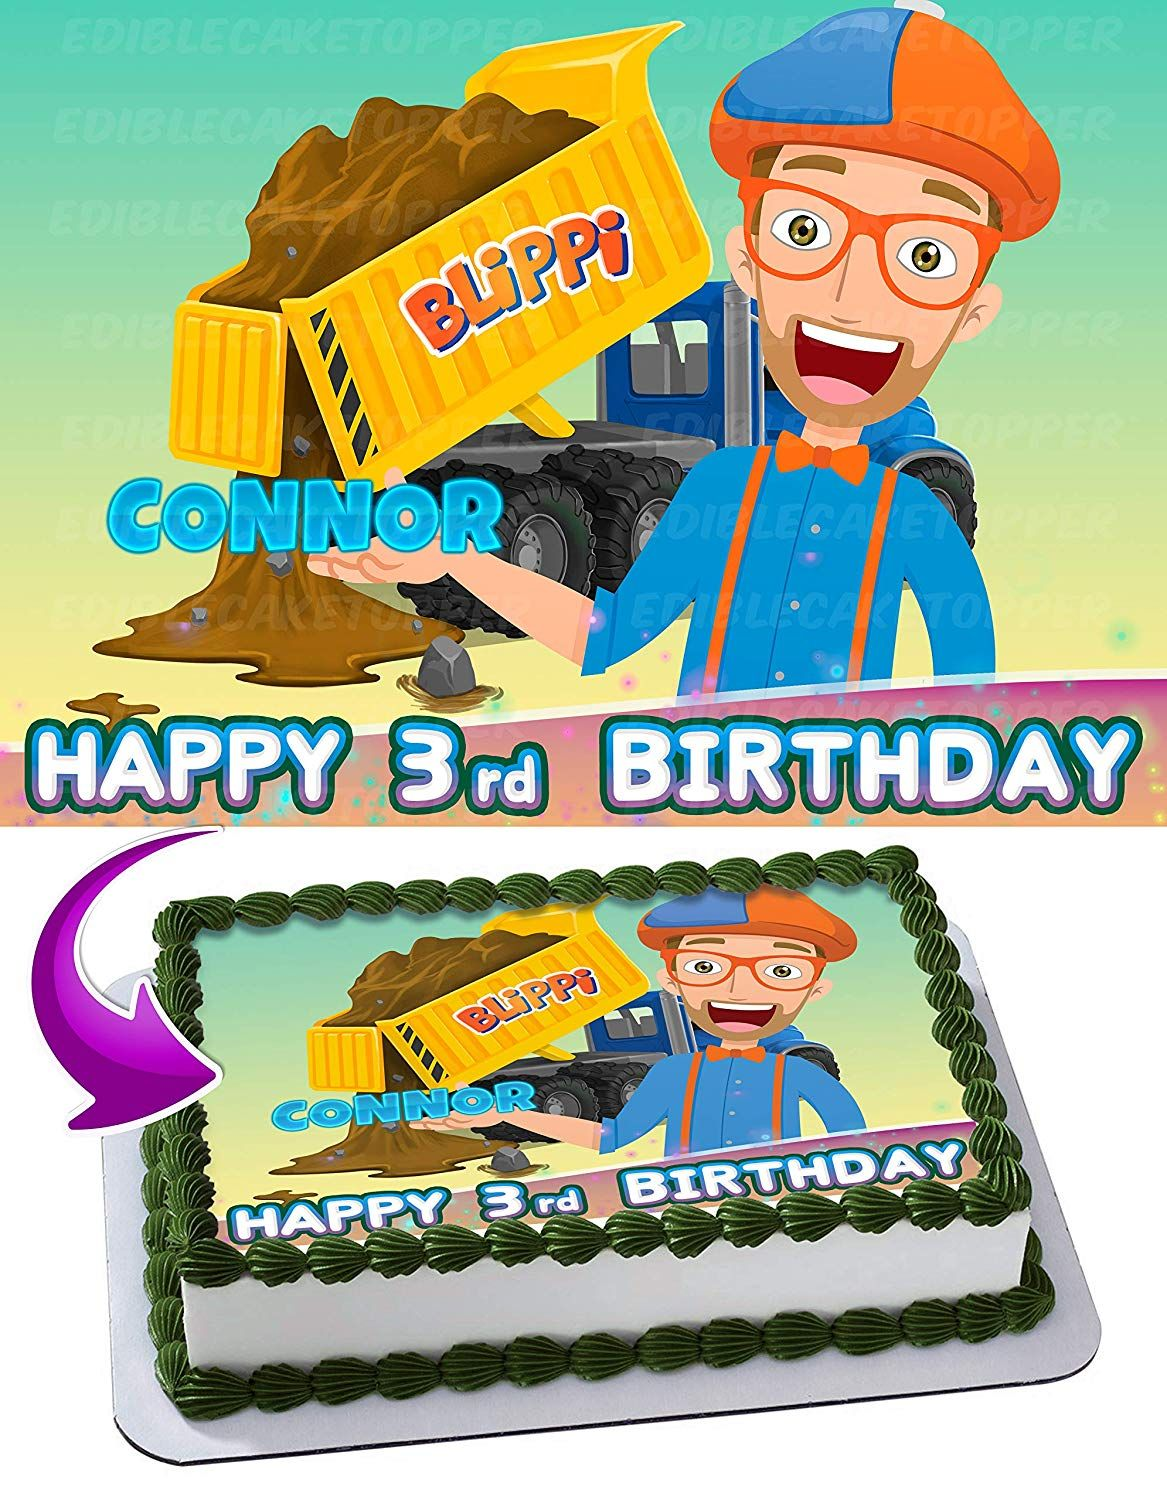 Blippi 2 Edible Image Cake Topper Personalized Bir